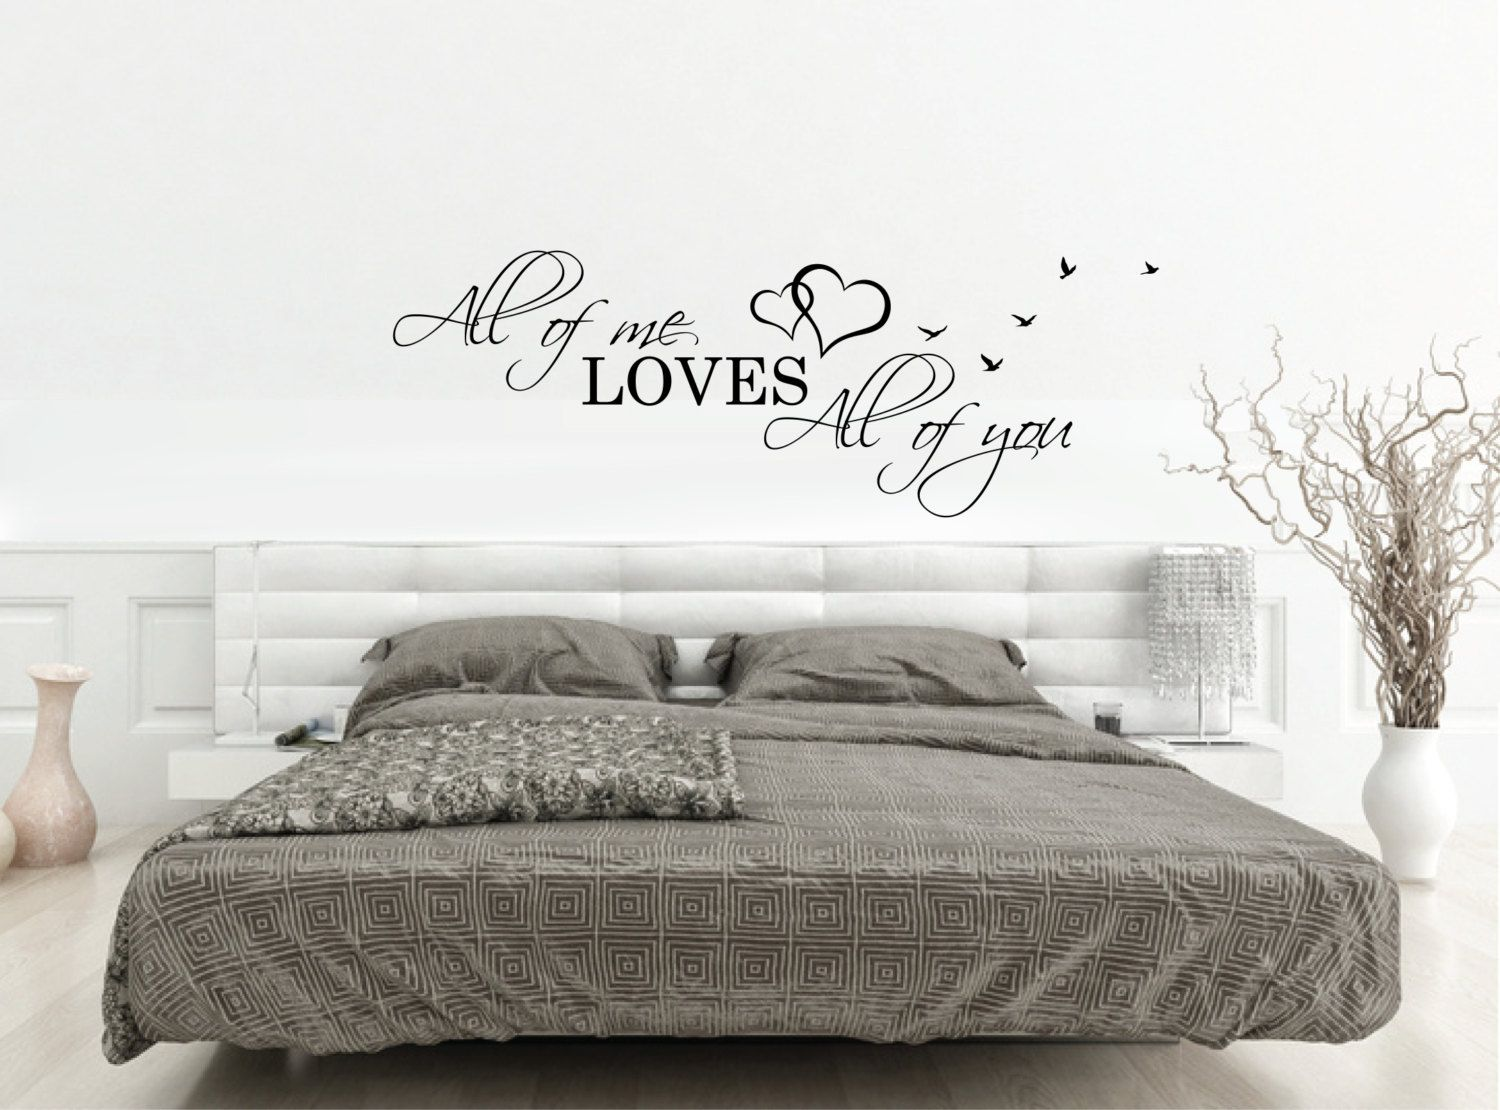 Above bed wall decal quote all of me loves all of you l over bed